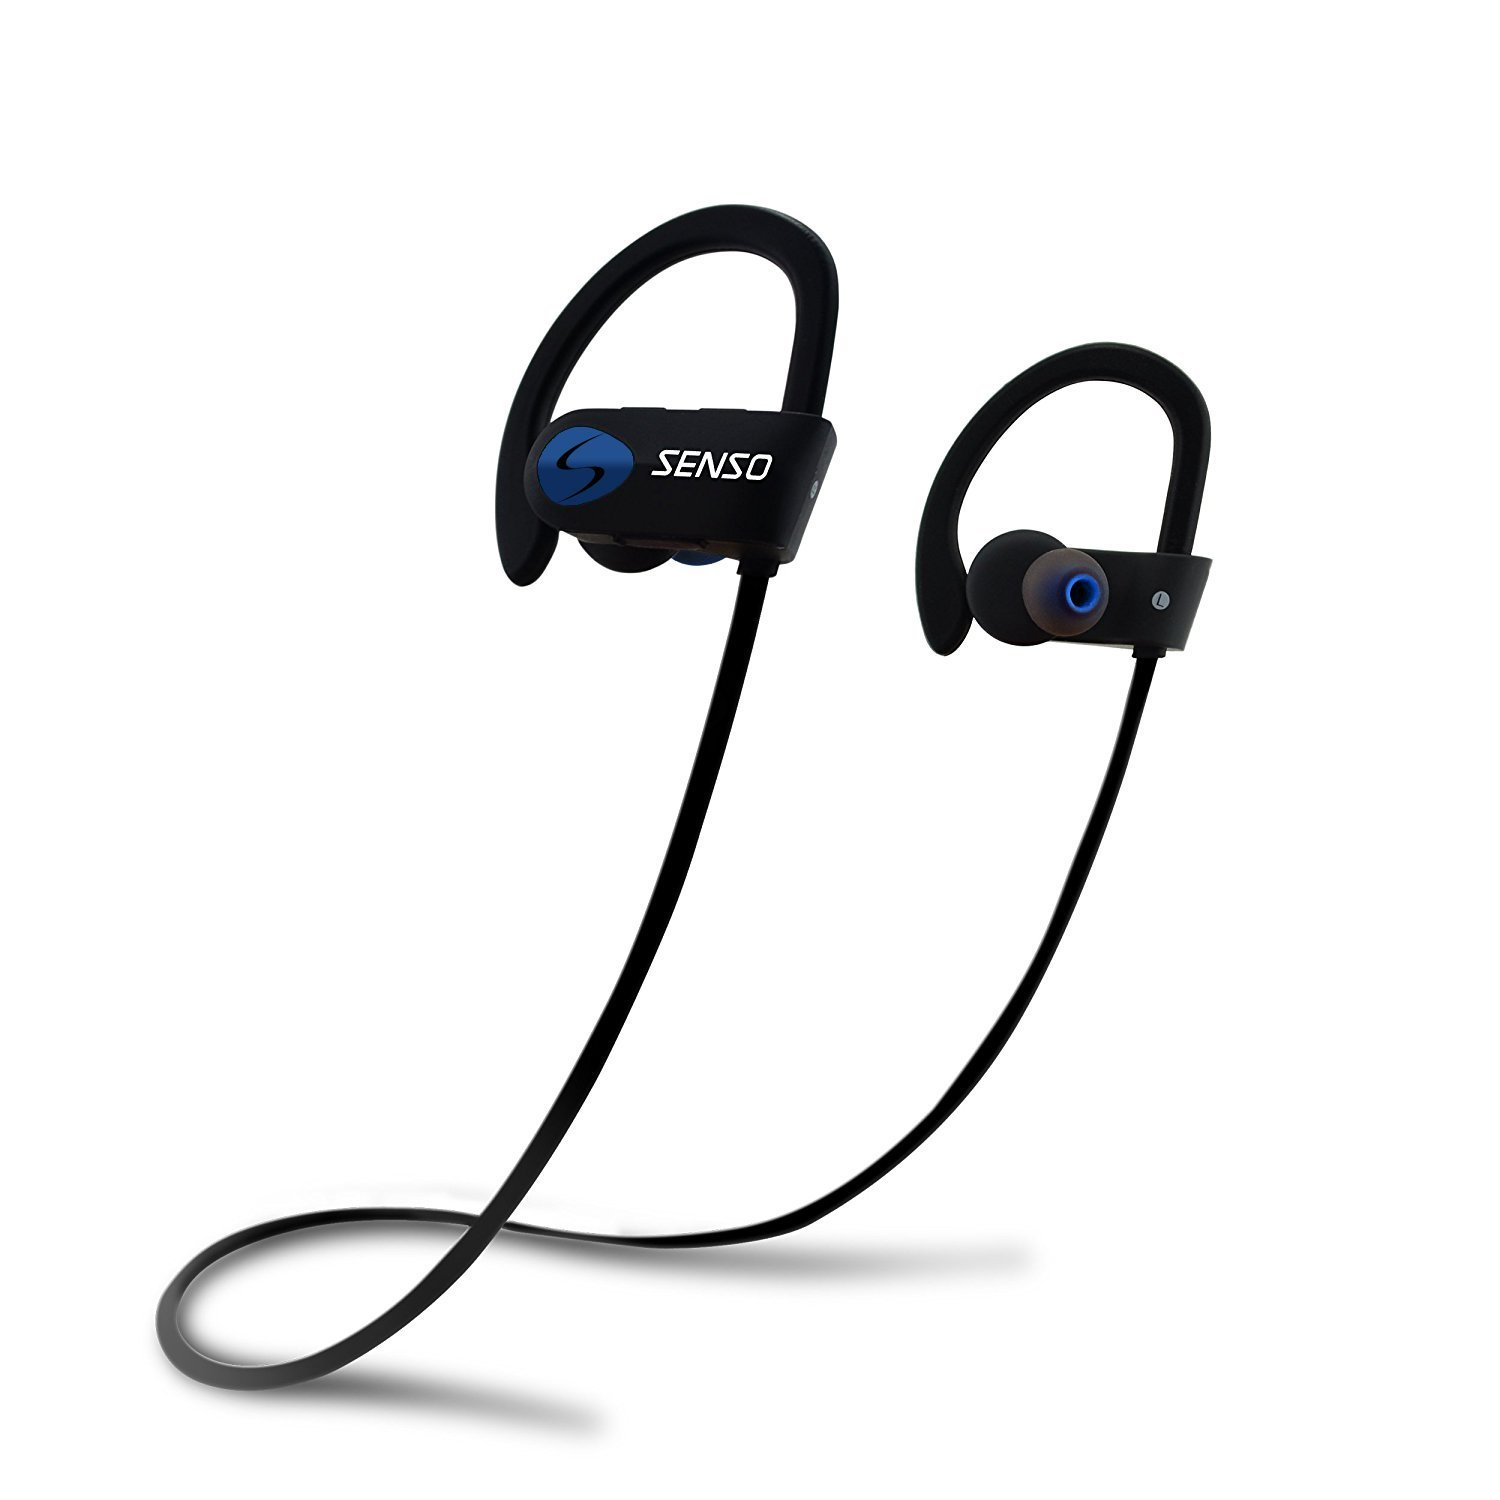 SENSO Bluetooth Headphones, Best Wireless Sports Earphones w/Mic IPX7 Waterproof HD Stereo Sweatproof Earbuds for Gym Running Workout 8 Hour Battery Noise Cancelling Headsets (Blue) by Senso